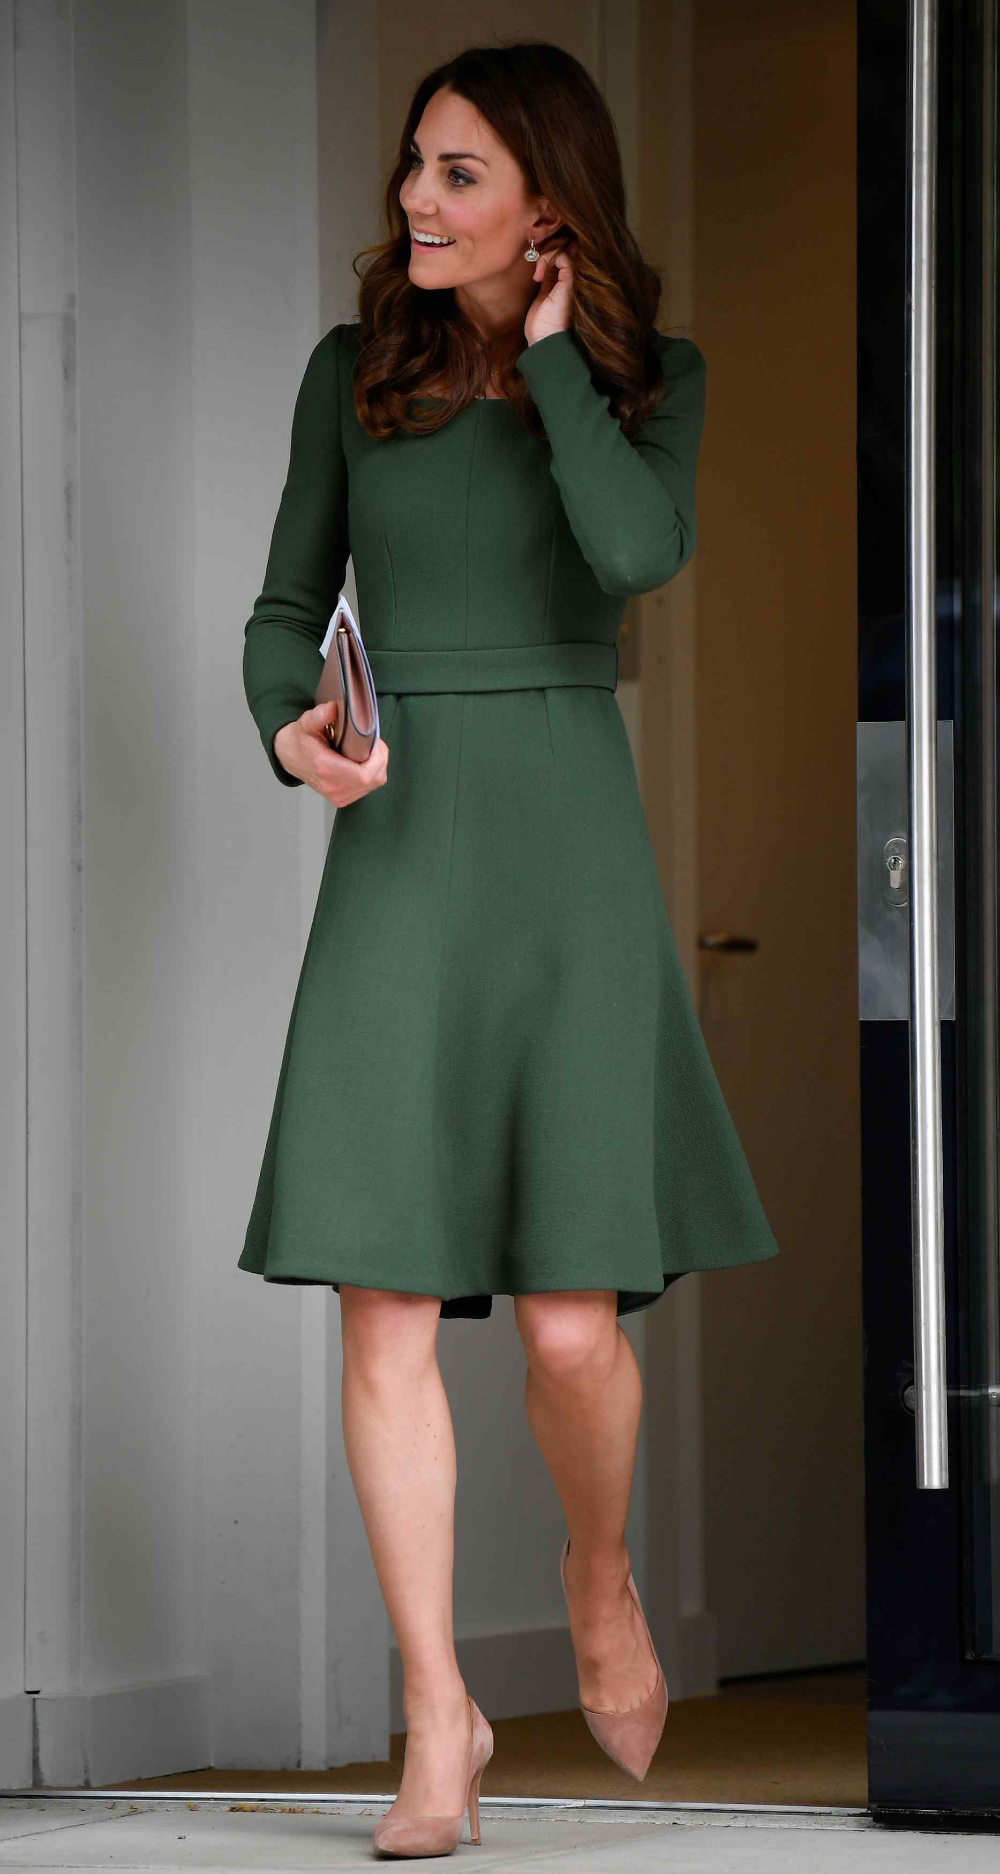 May 01 The Duchess Of Cambridge Opens Anna Freud Centre Of Excellence May012019 001 In 2020 Kate Middleton Style Outfits Princess Kate Style Kate Middleton Outfits